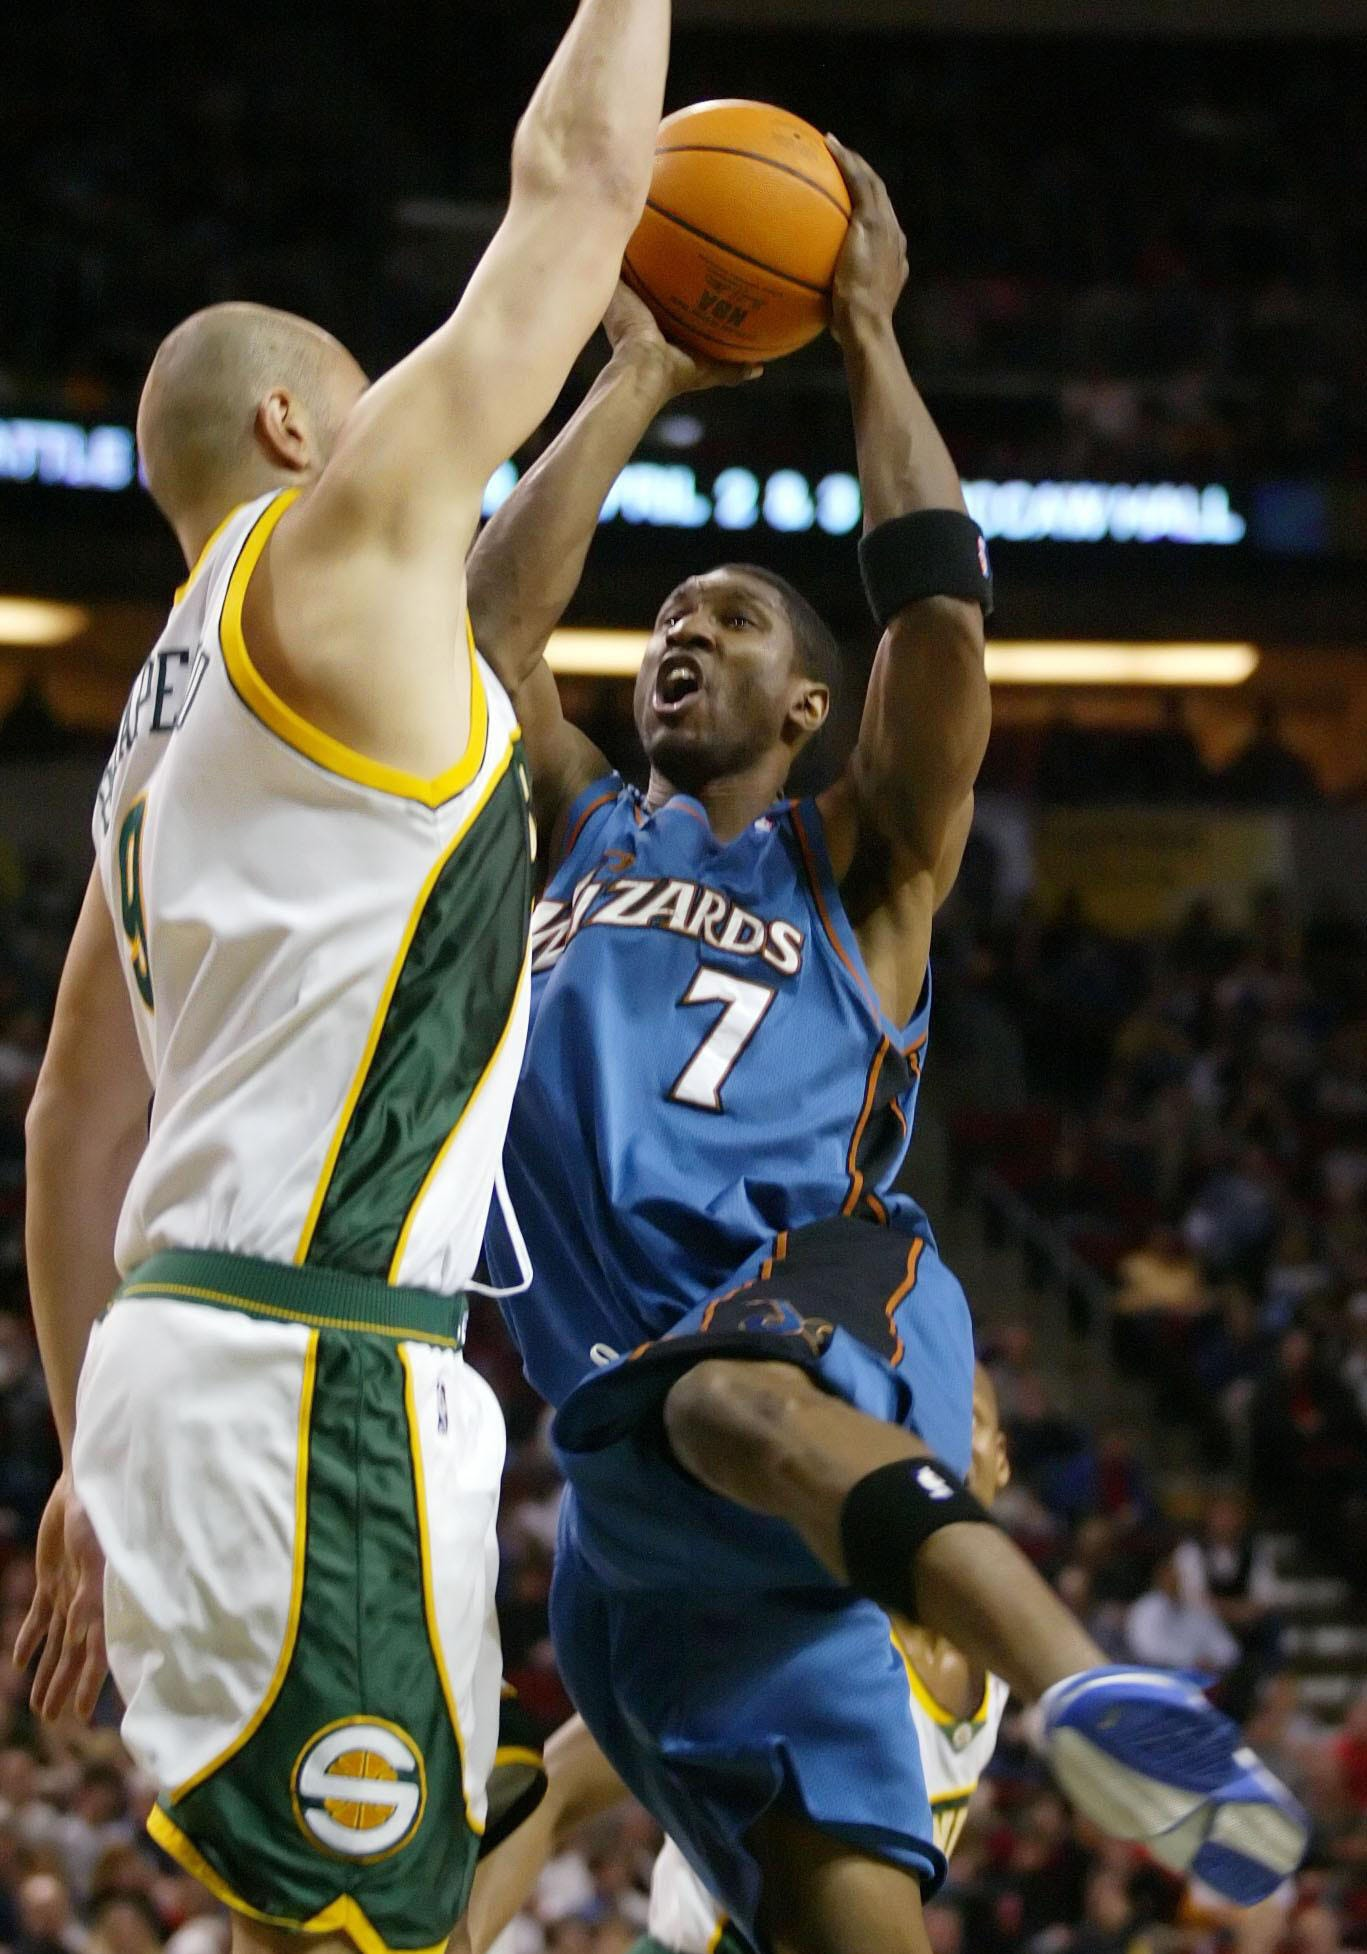 The Washington Wizards' Laron Profit (7) drives to the basket against the Seattle SuperSonics' Vitaly Potapenko March 27, 2005.